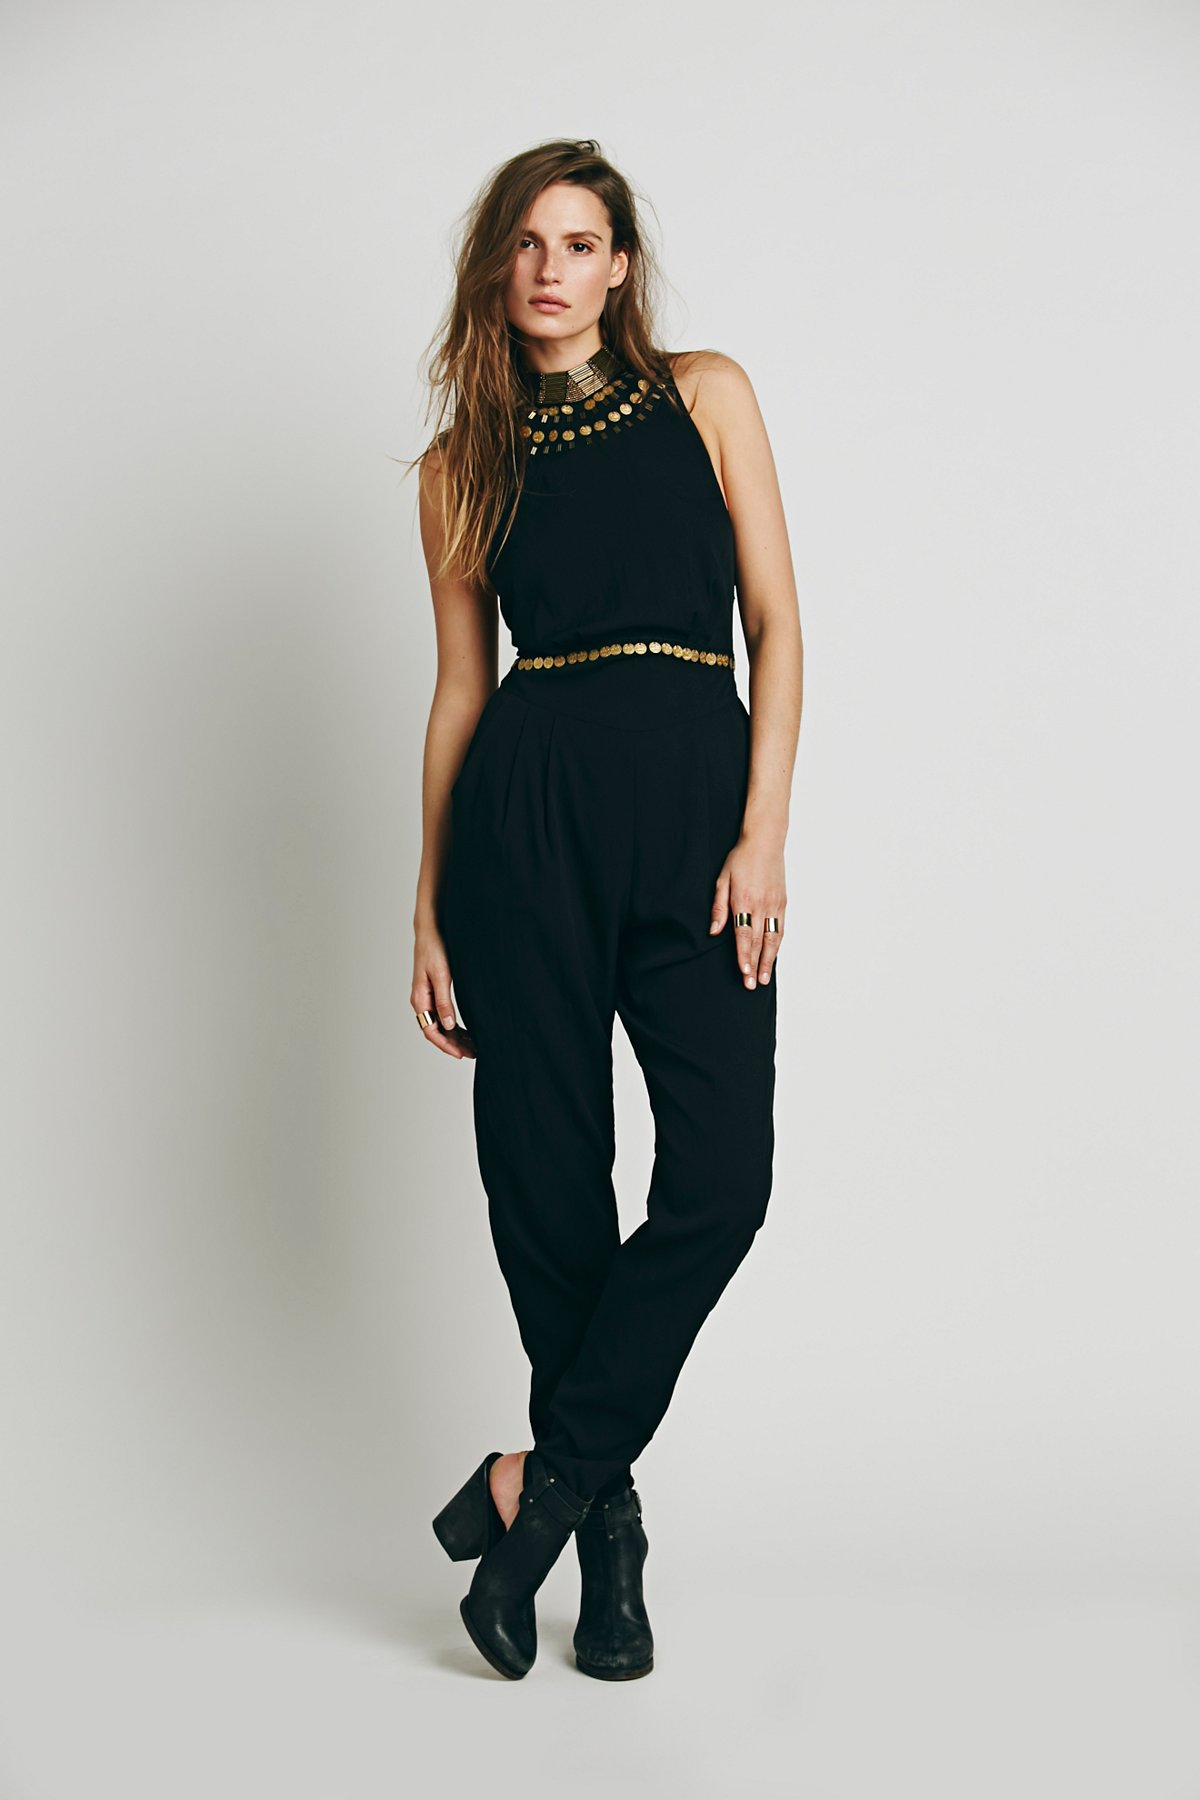 Embellished Catsuit